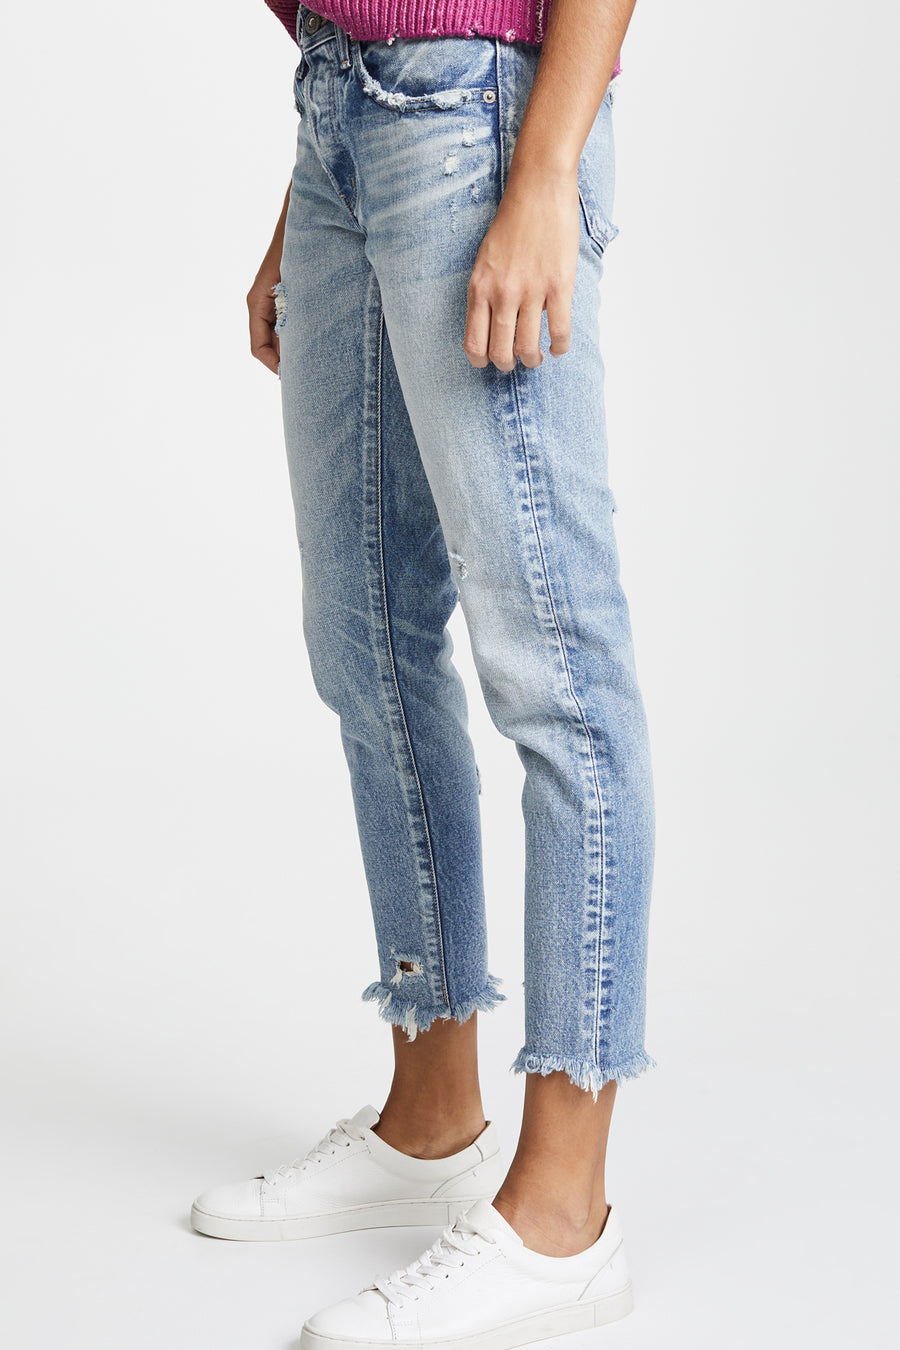 Kelley Tapered Skinny - Light Blue - Pavilion